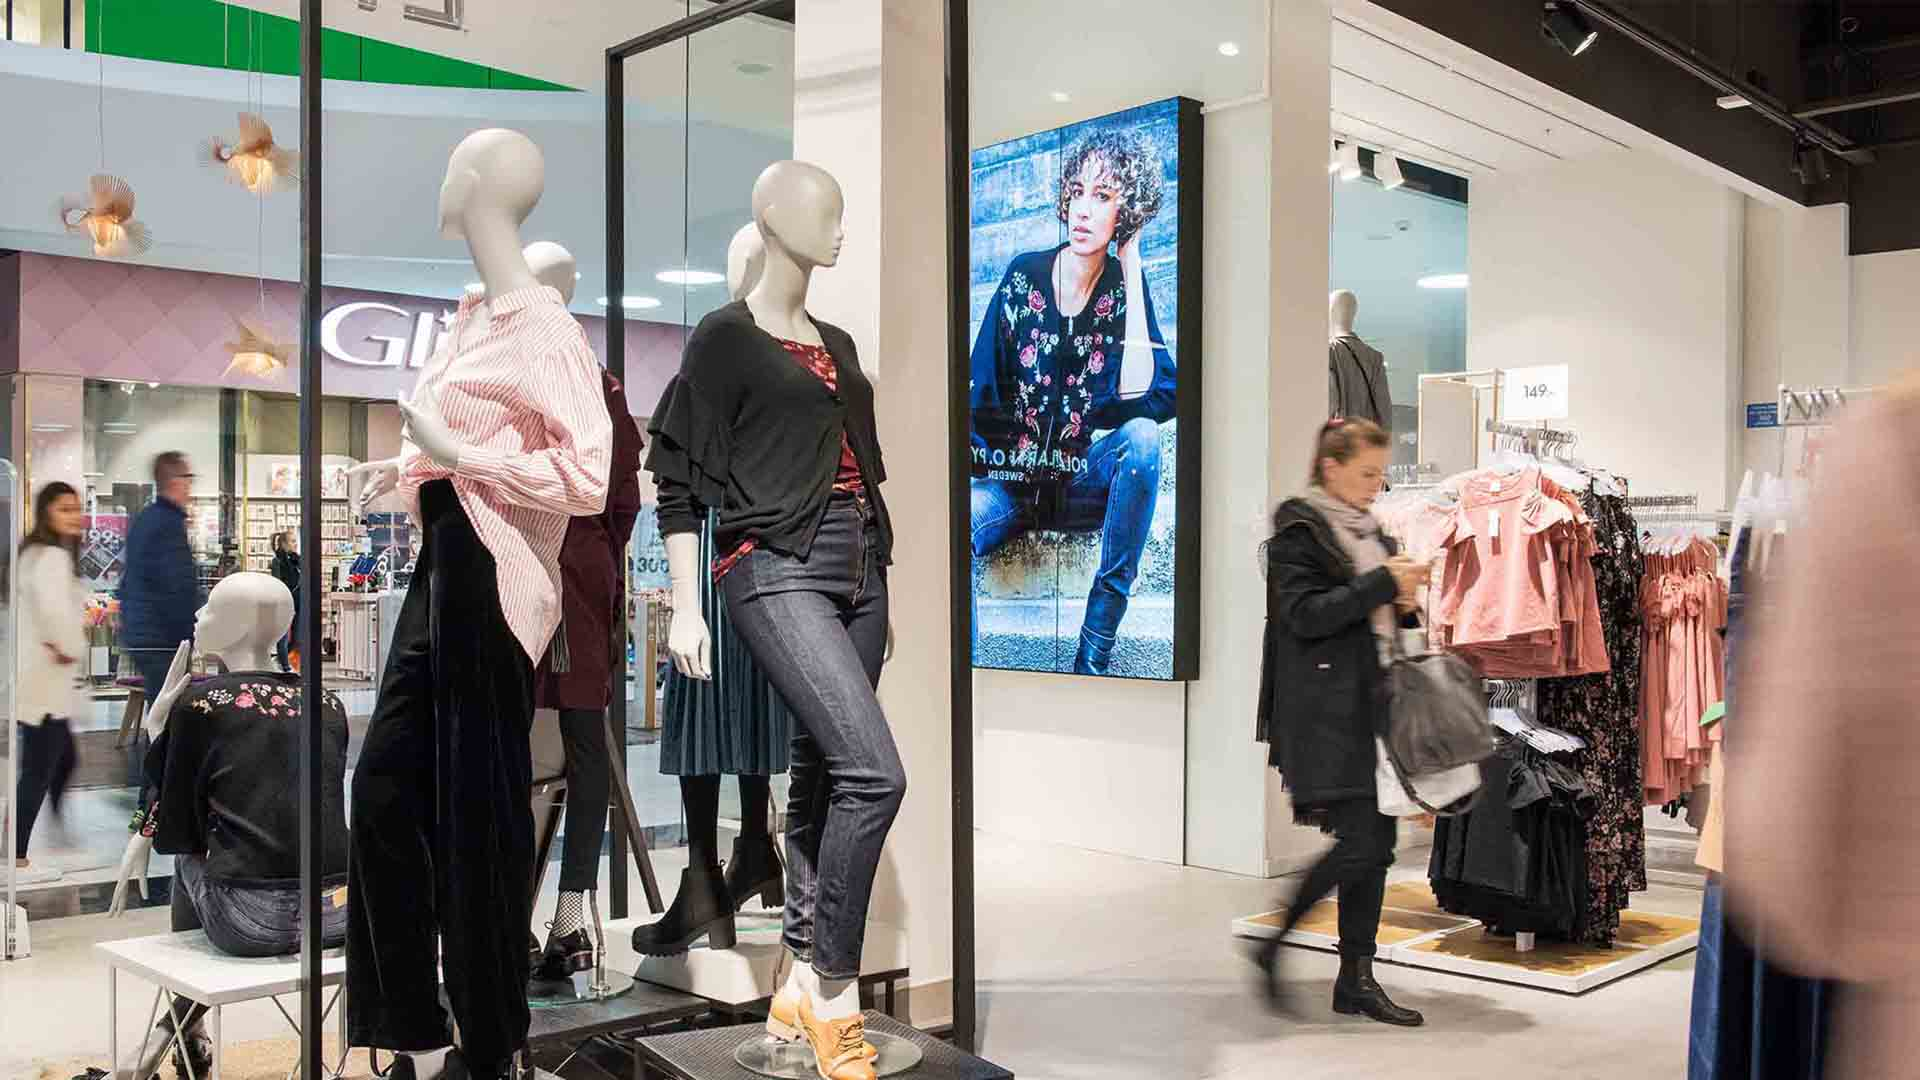 In- store Digital Signage to enhance atmosphere